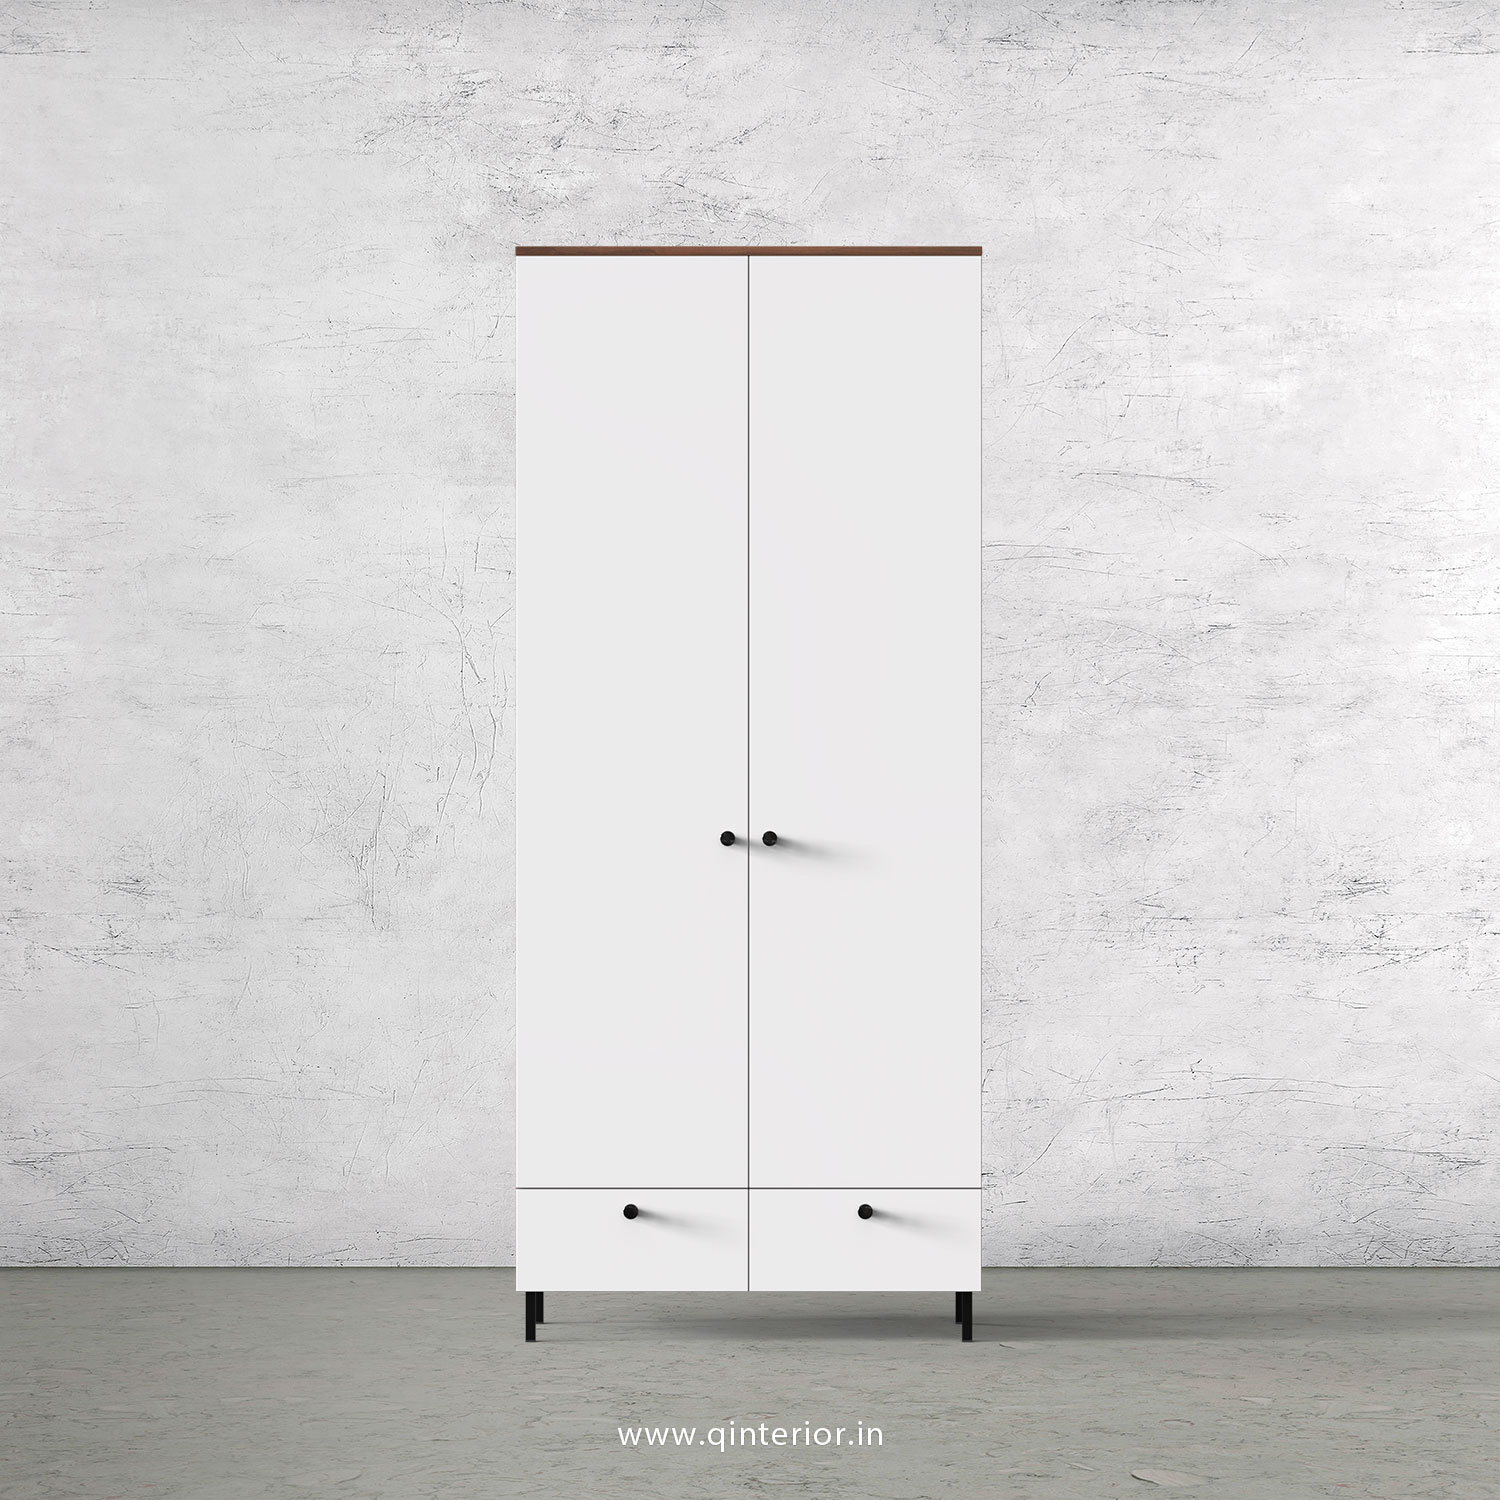 Lambent 2 Door Wardrobe in Teak and White Finish – DWRD002 C6